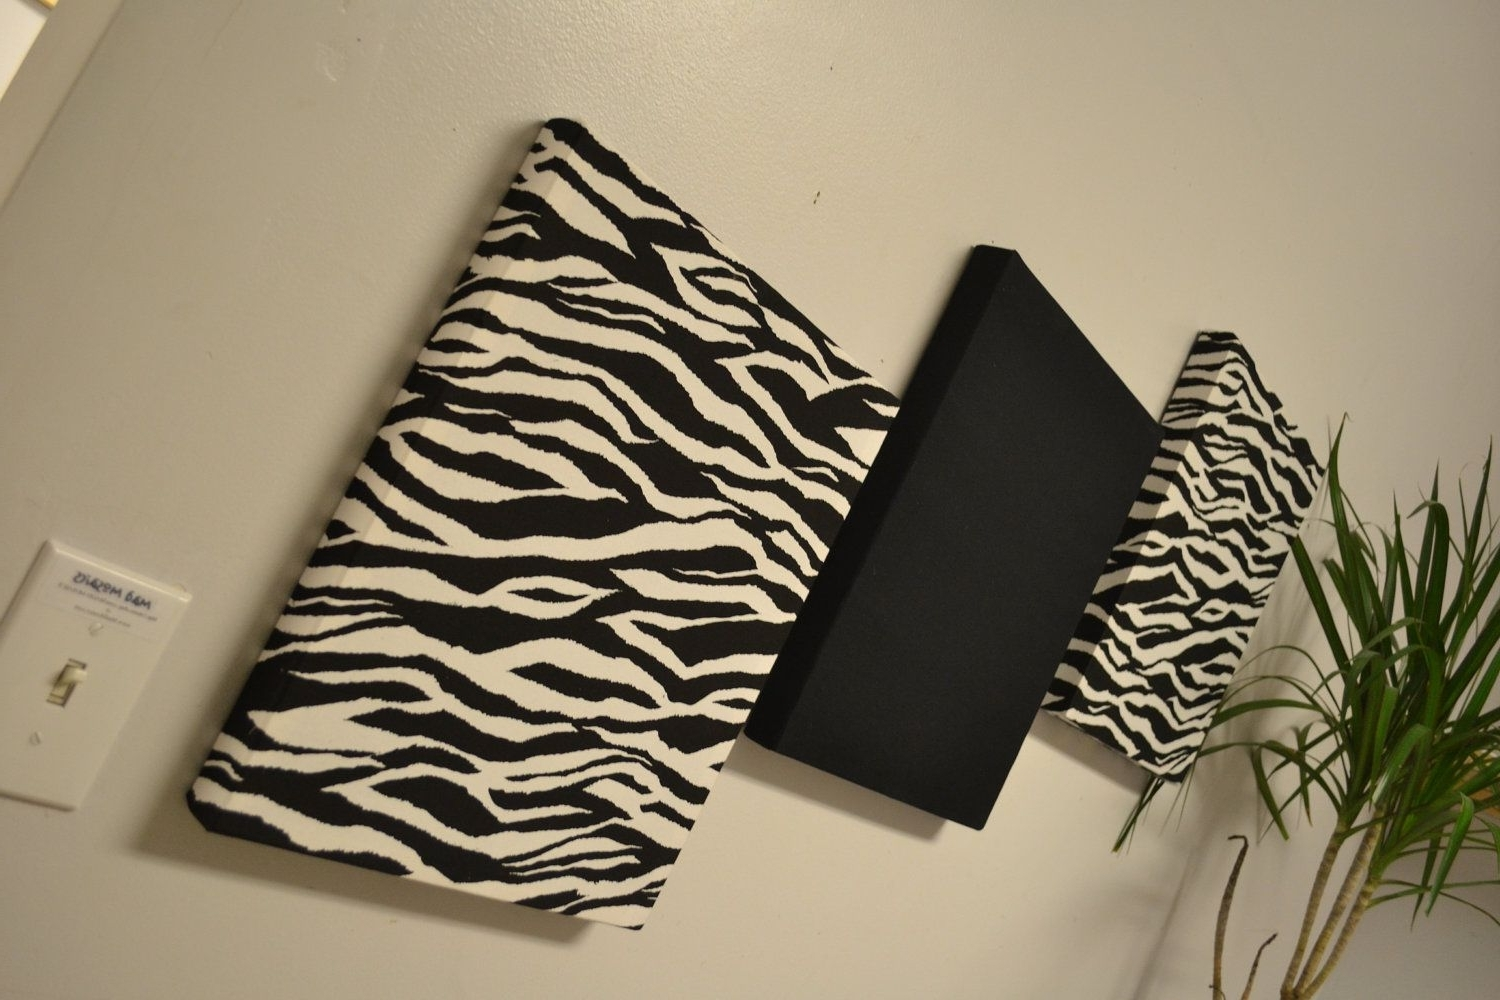 Newest Zebra Wall Decor Canvas Wall Hangings Black Whitemadmosaics In Zebra Canvas Wall Art (View 6 of 15)